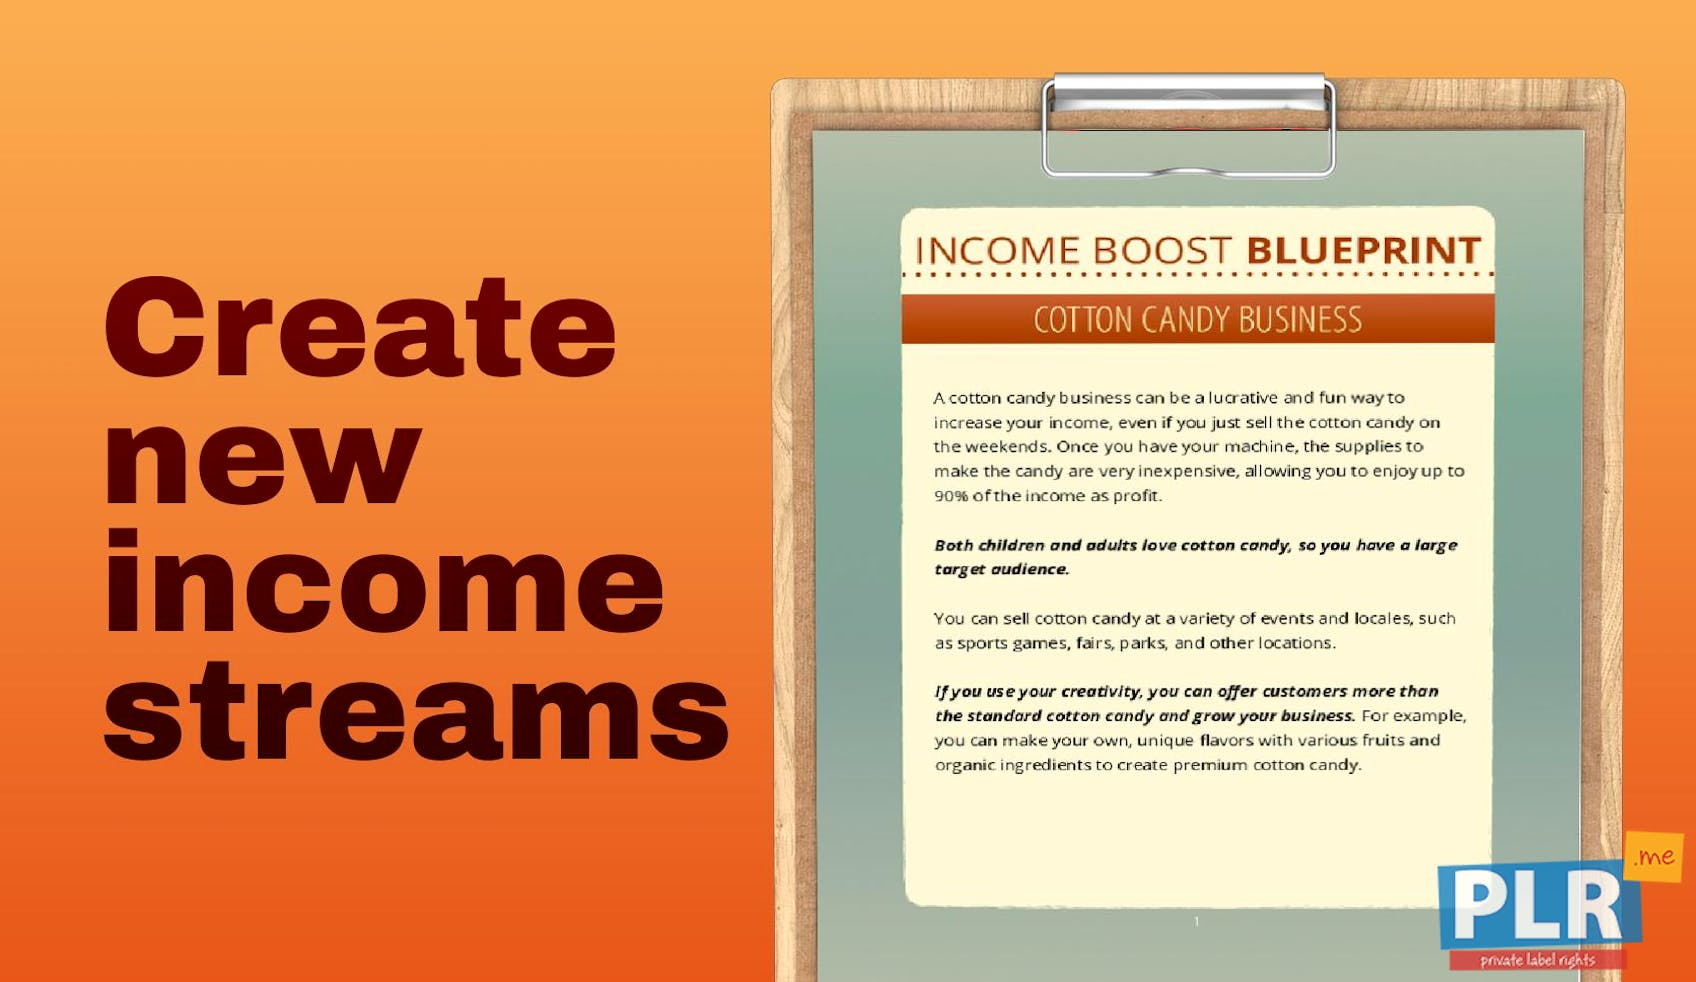 Income Boost Blueprint Cotton Candy Business